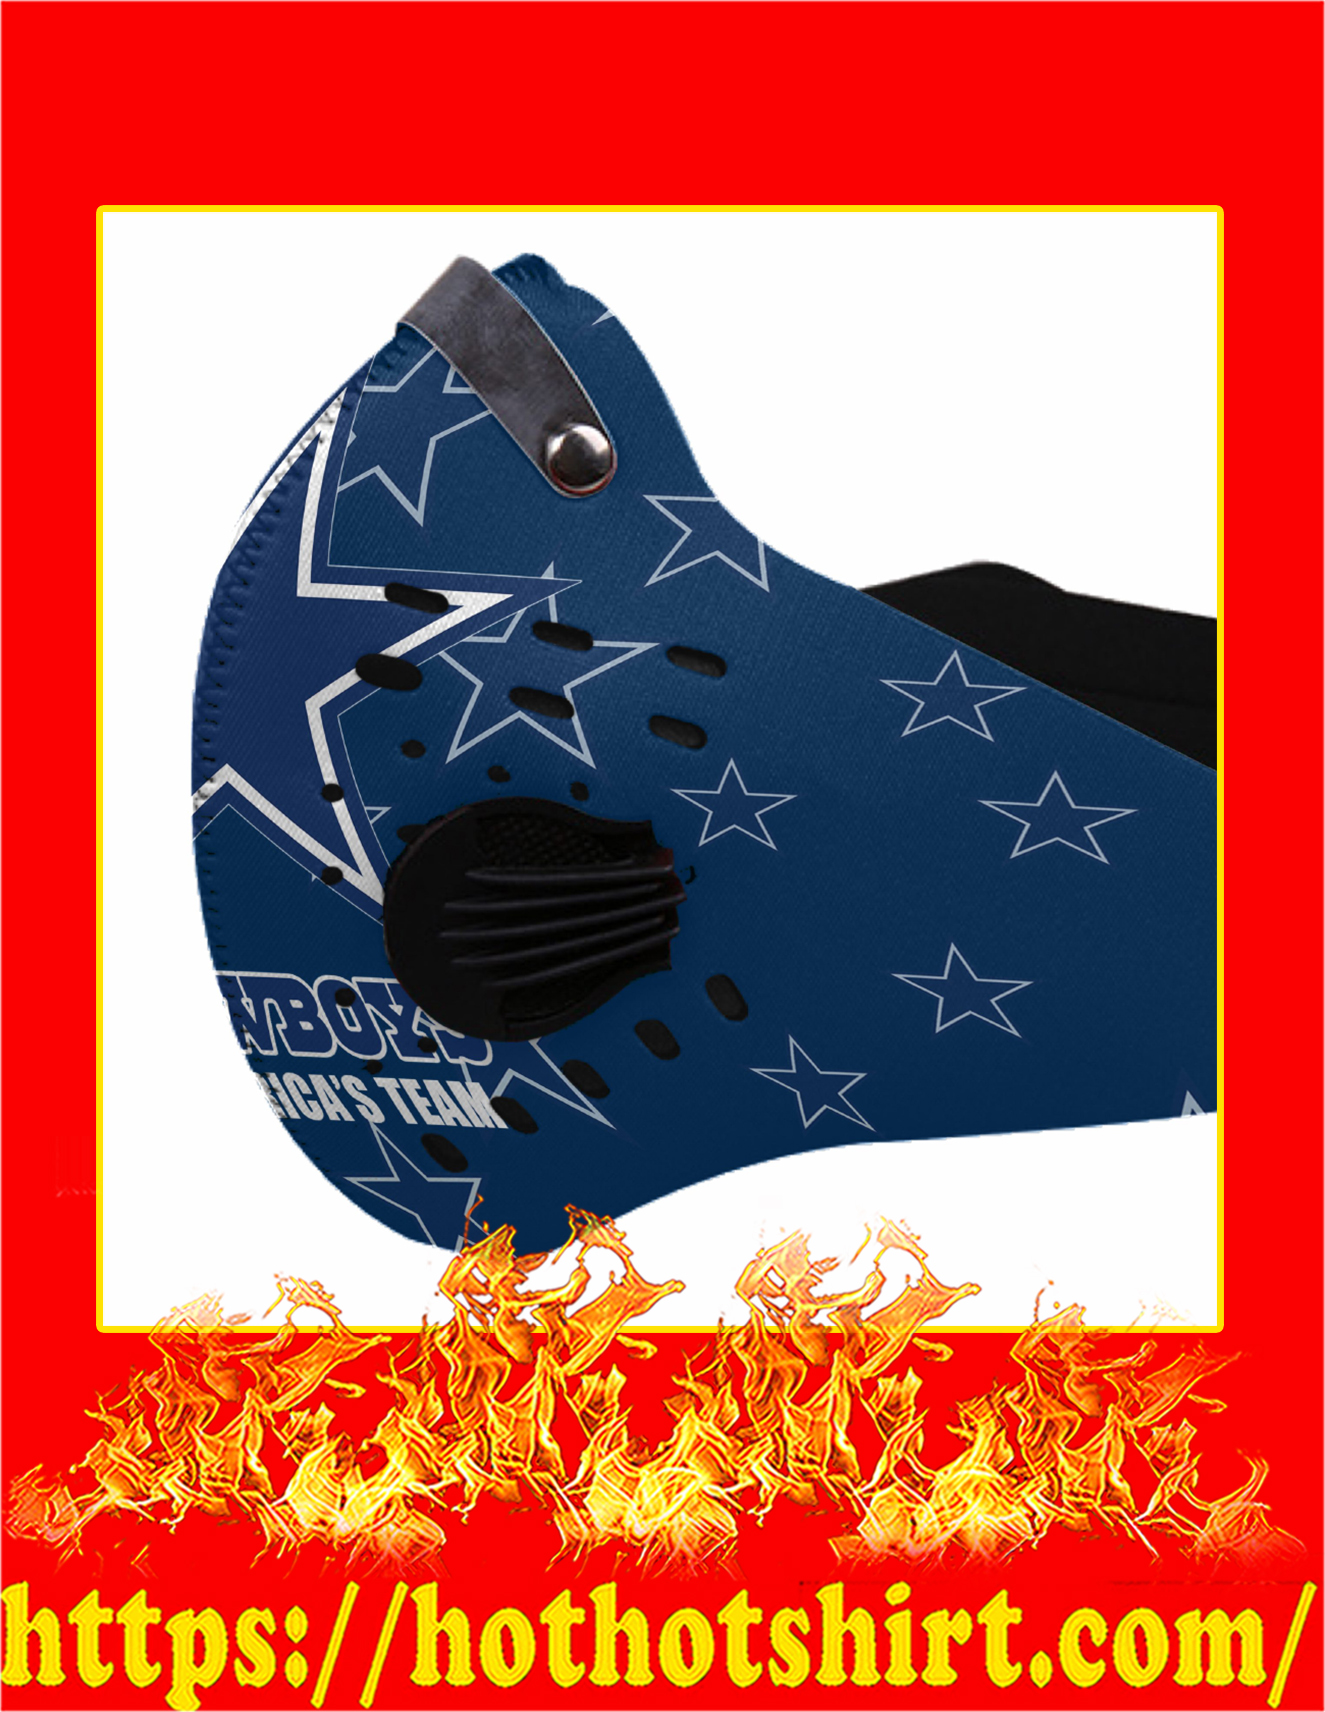 Cowboys america's team filter face mask - Pic 1